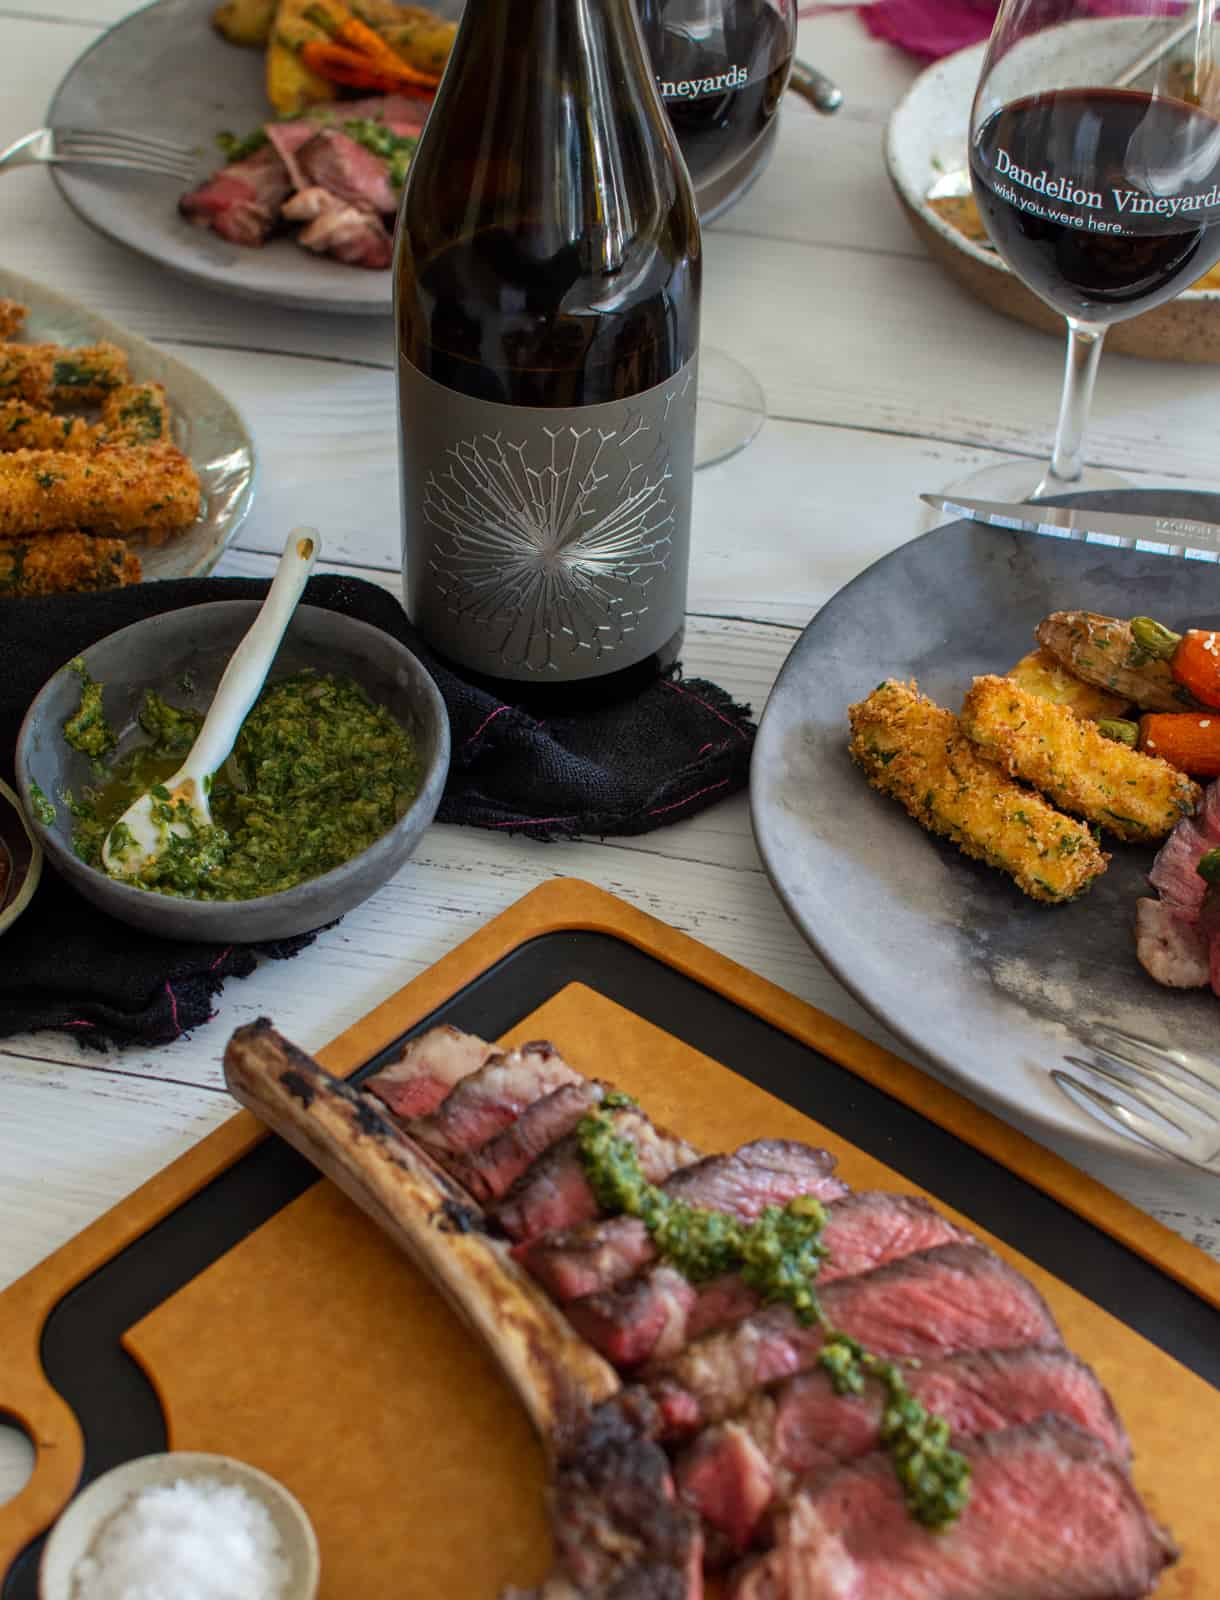 grilled tomahawk steak, wine and sides on a table